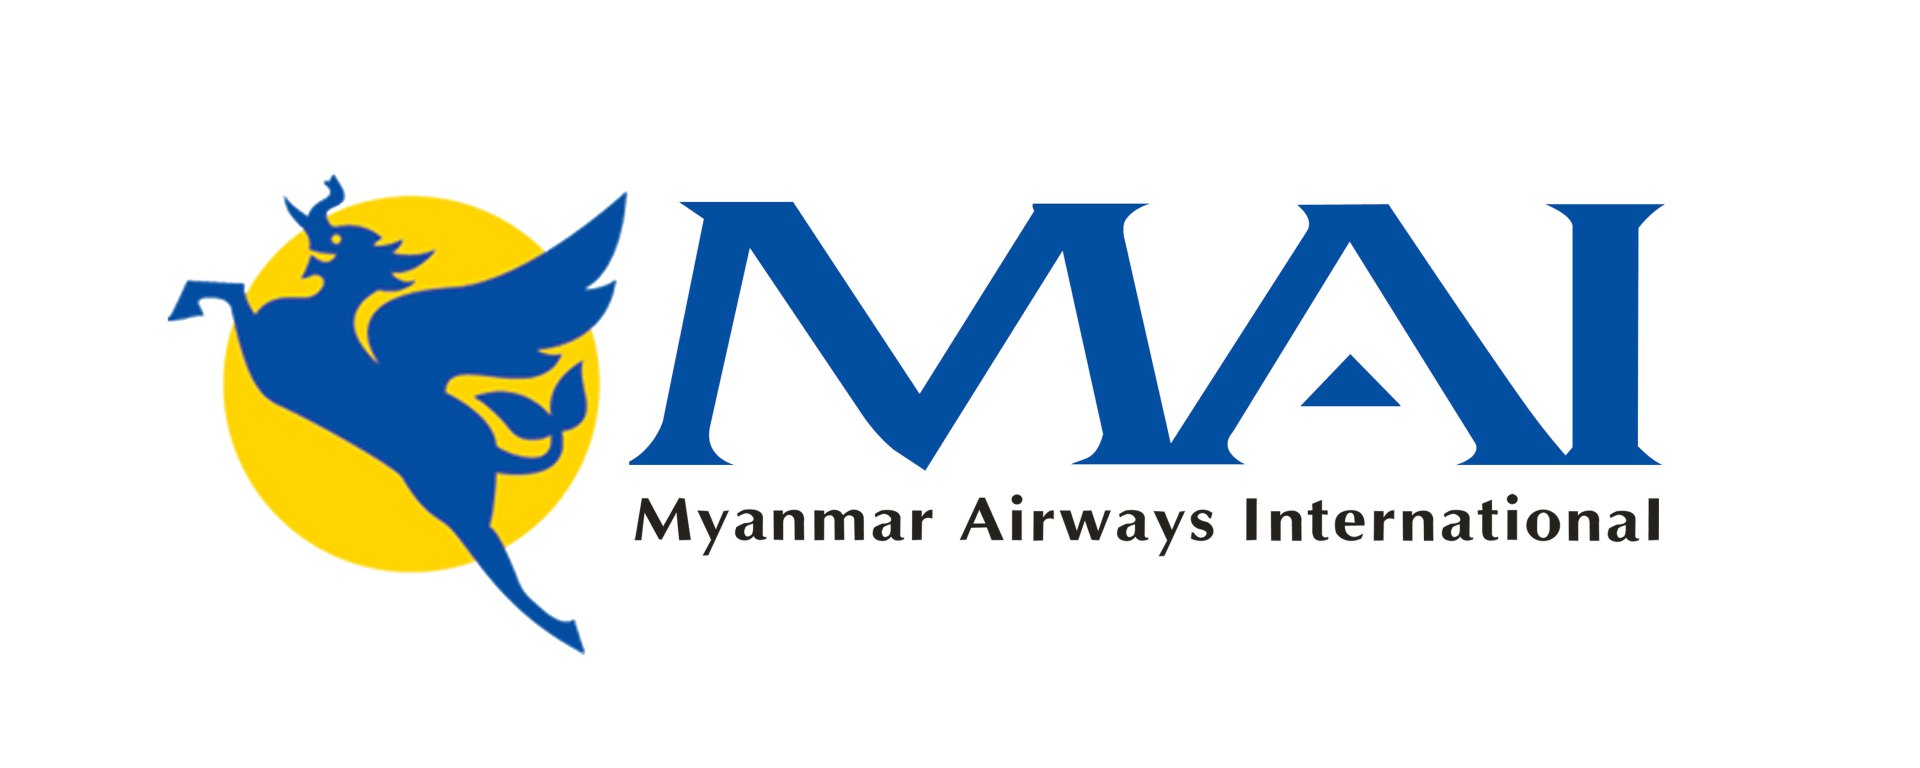 Myanmar Airways International logo